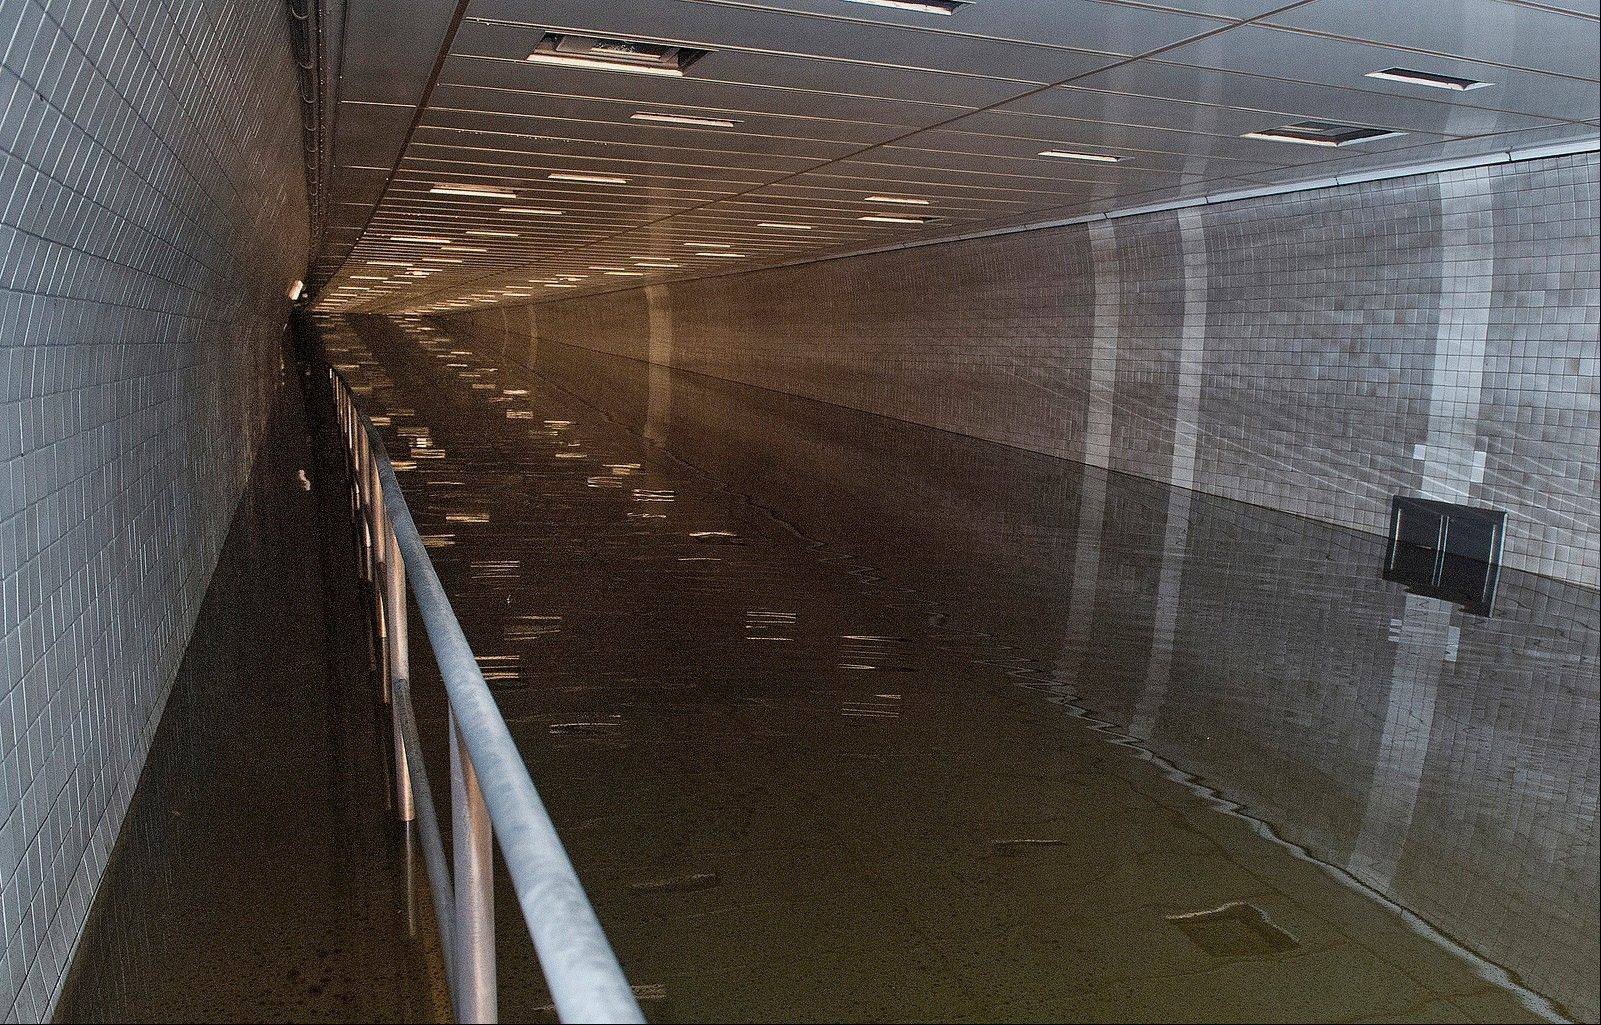 Water floods the Hugh L. Carey Tunnel, formerly known as the Brooklyn Battery Tunnel, during Superstorm Sandy, in New York.